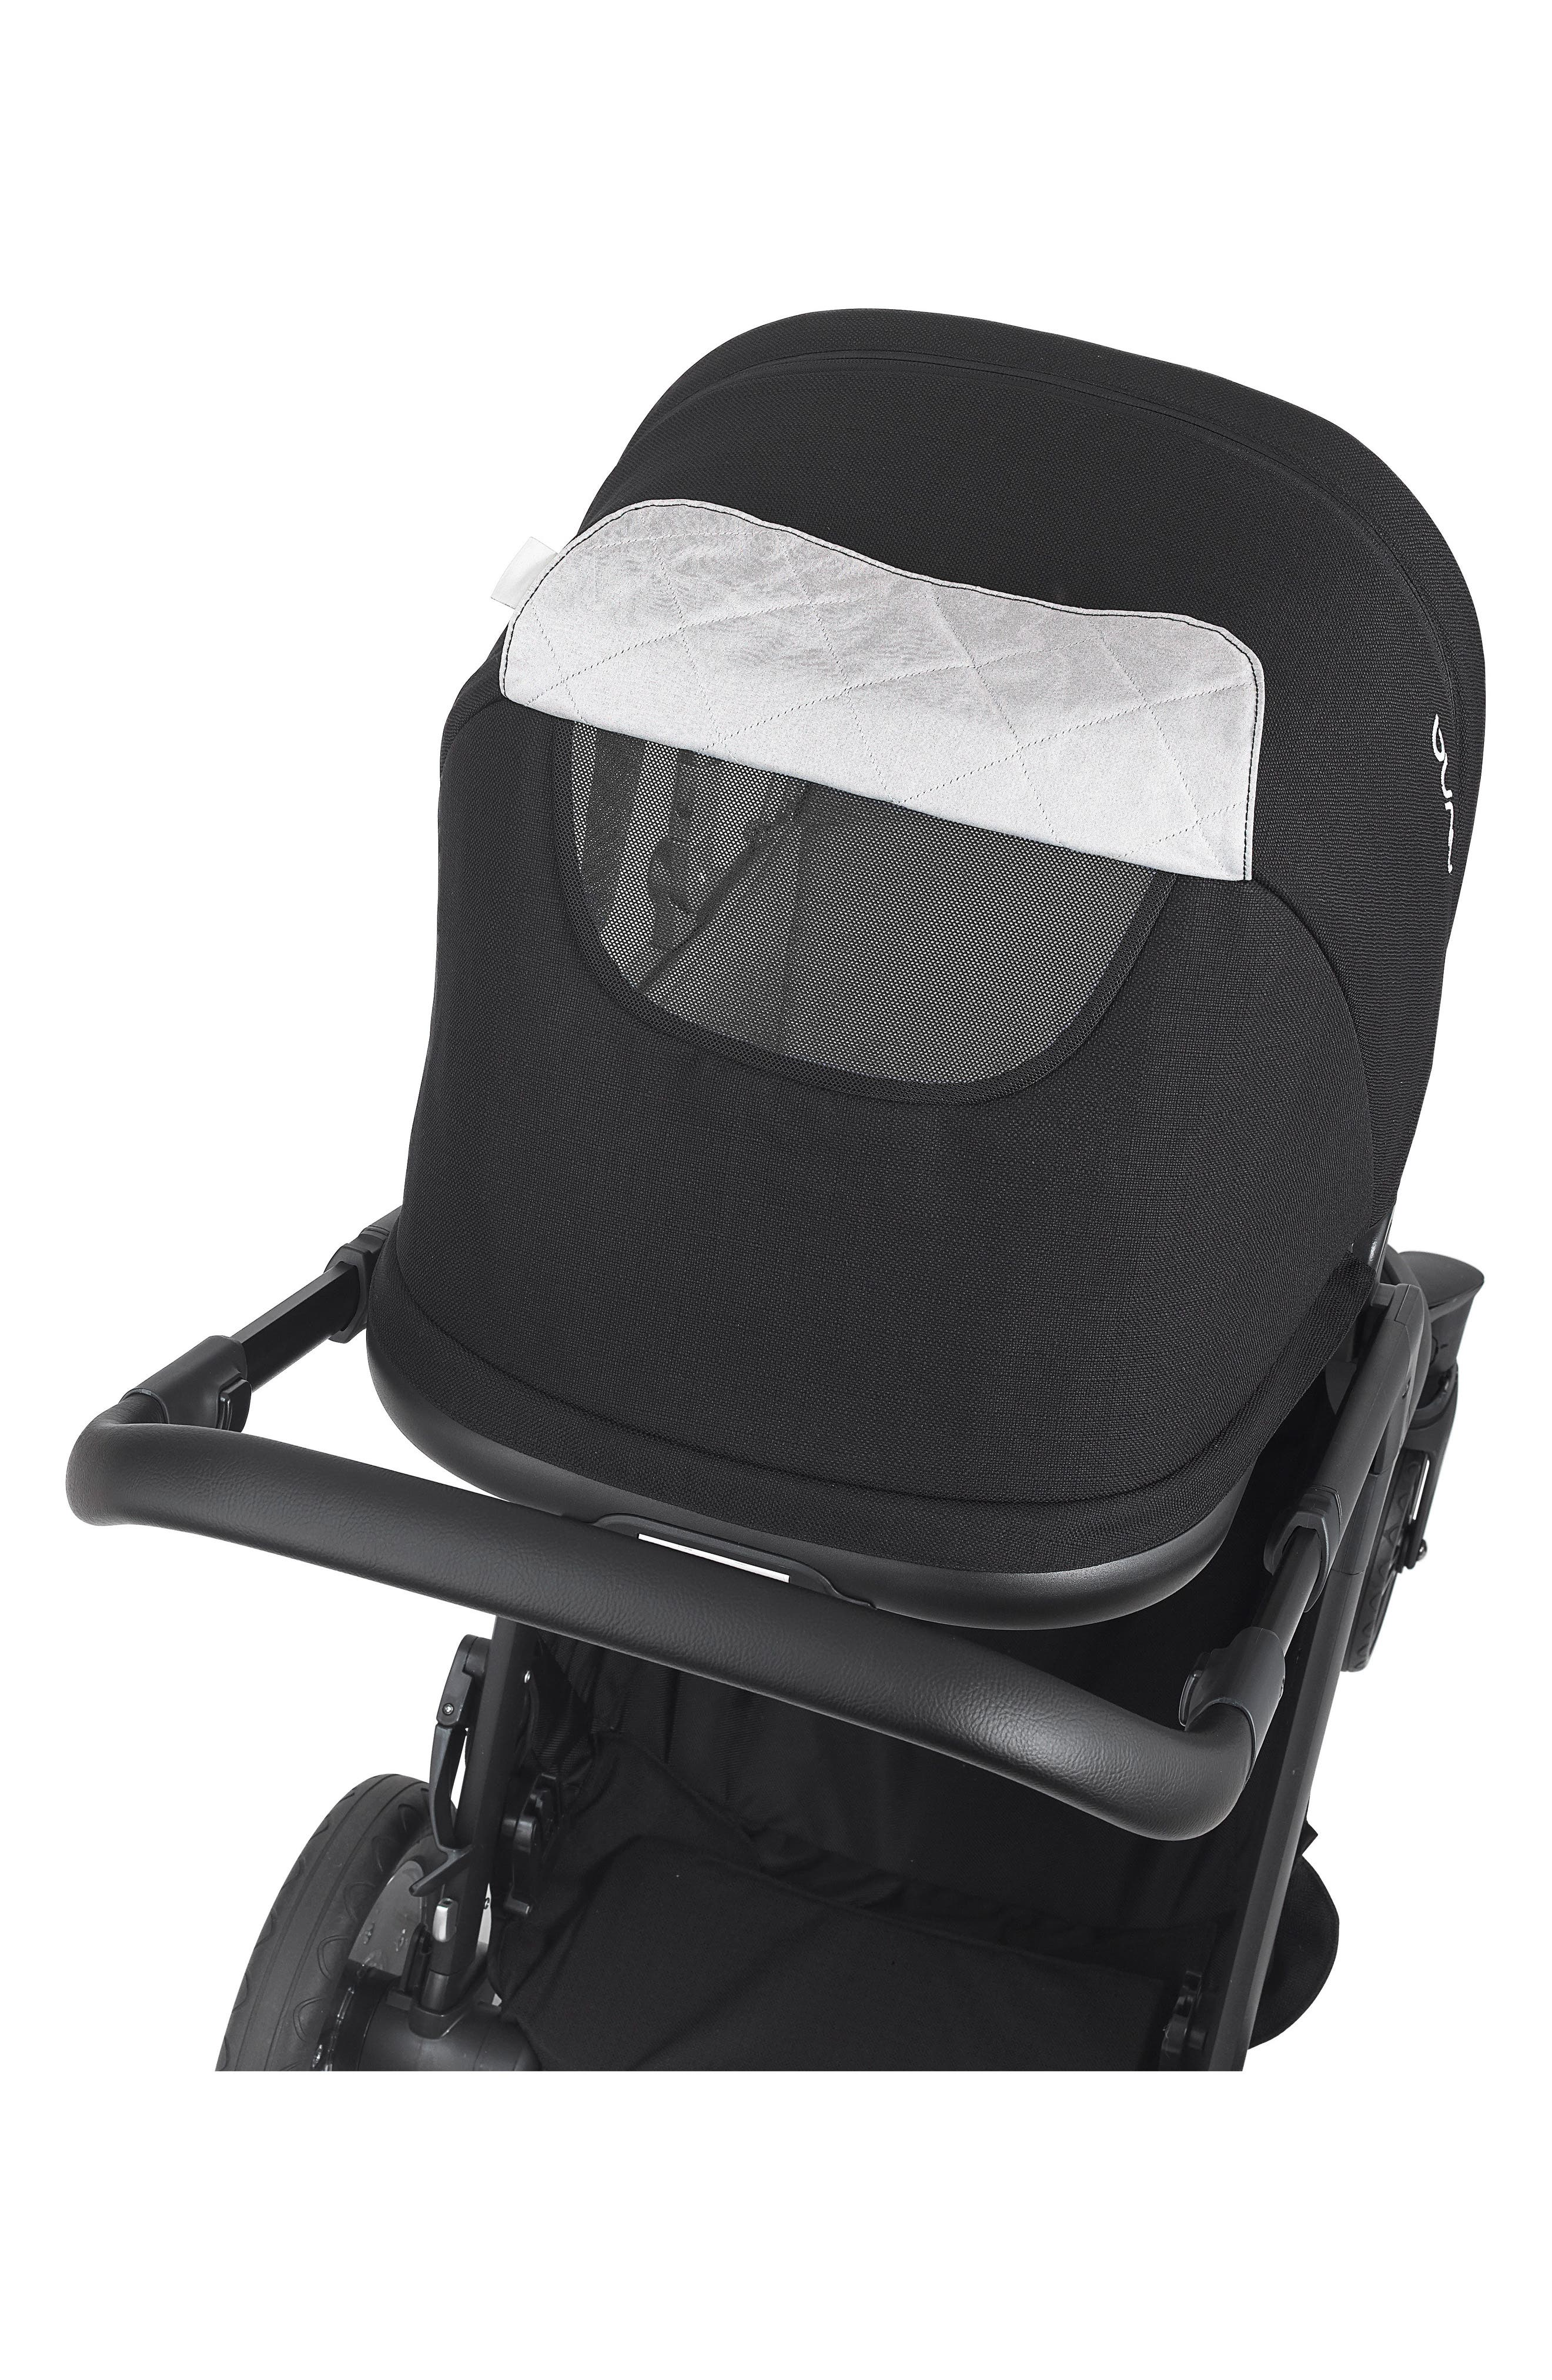 DEMI<sup>™</sup> Grow Sibling Seat Attachment for DEMI Grow Stroller,                             Alternate thumbnail 2, color,                             CAVIAR